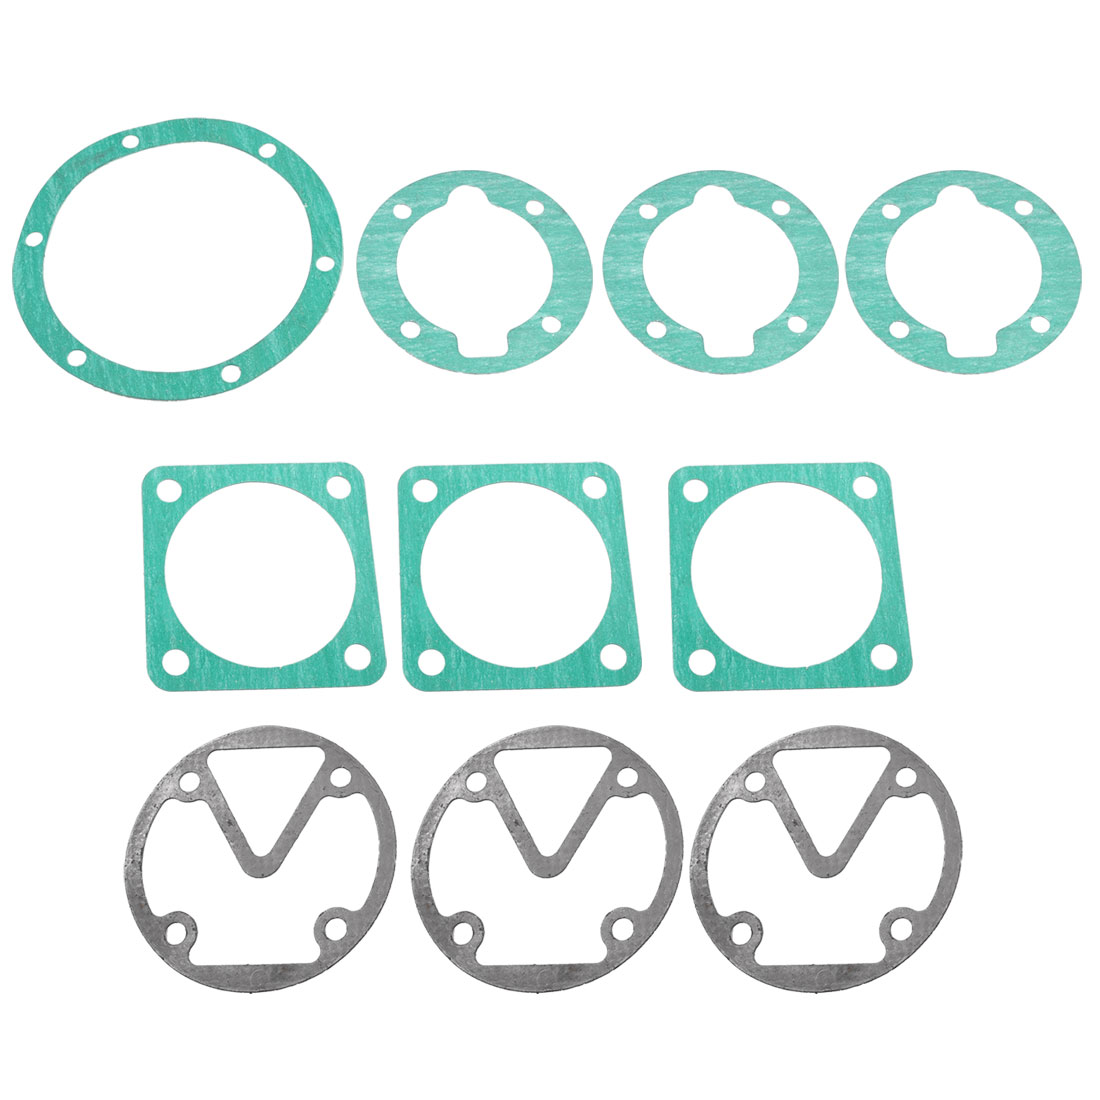 Green Gray Paper Cylinder Head Base Plate Sealing Gaskets Washers 10 Pcs